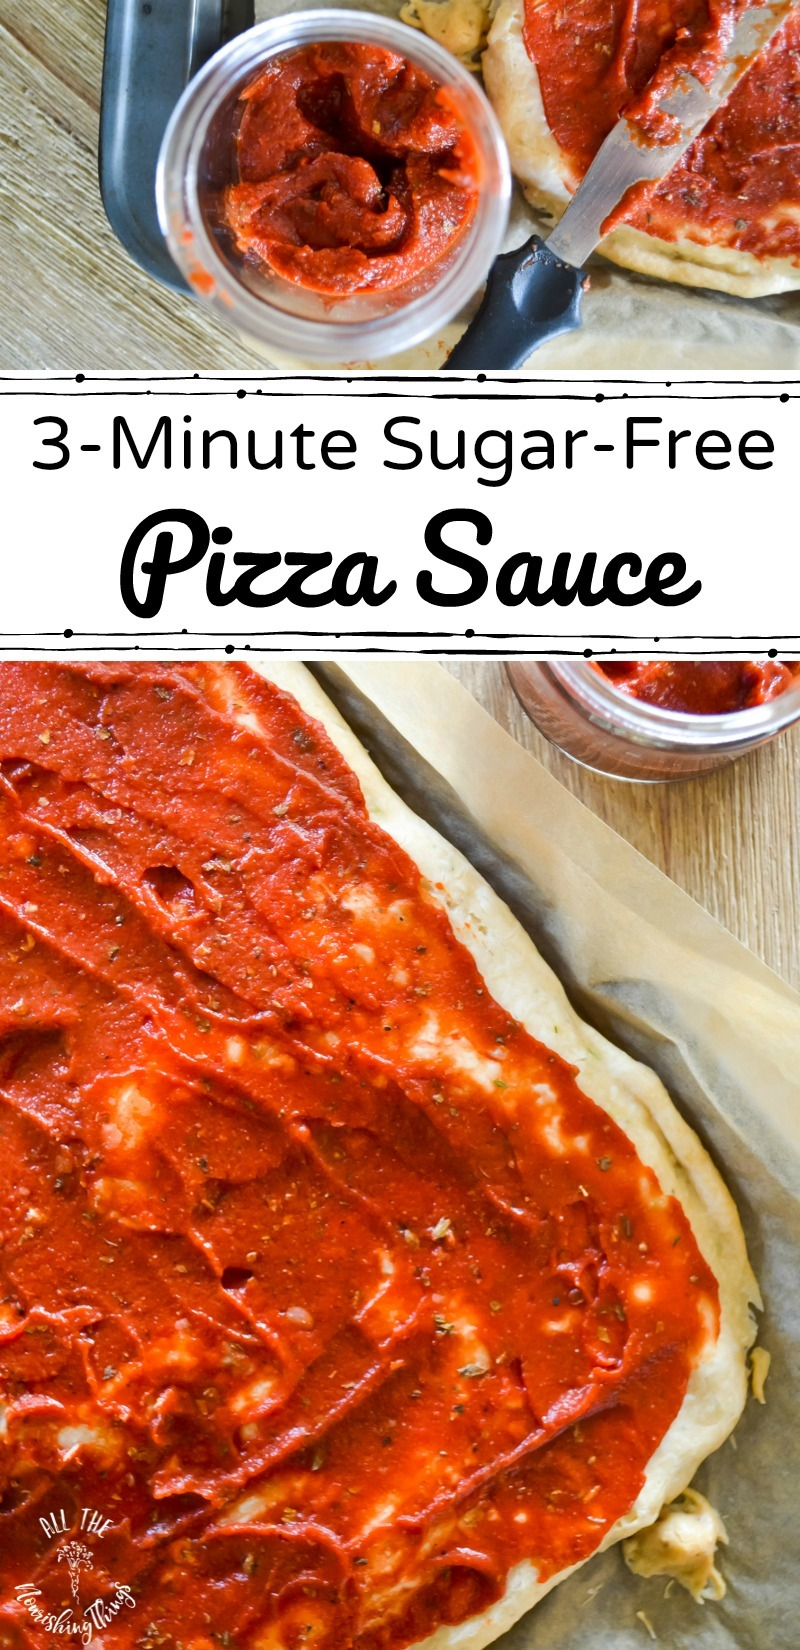 sugar-free pizza sauce with text overlay